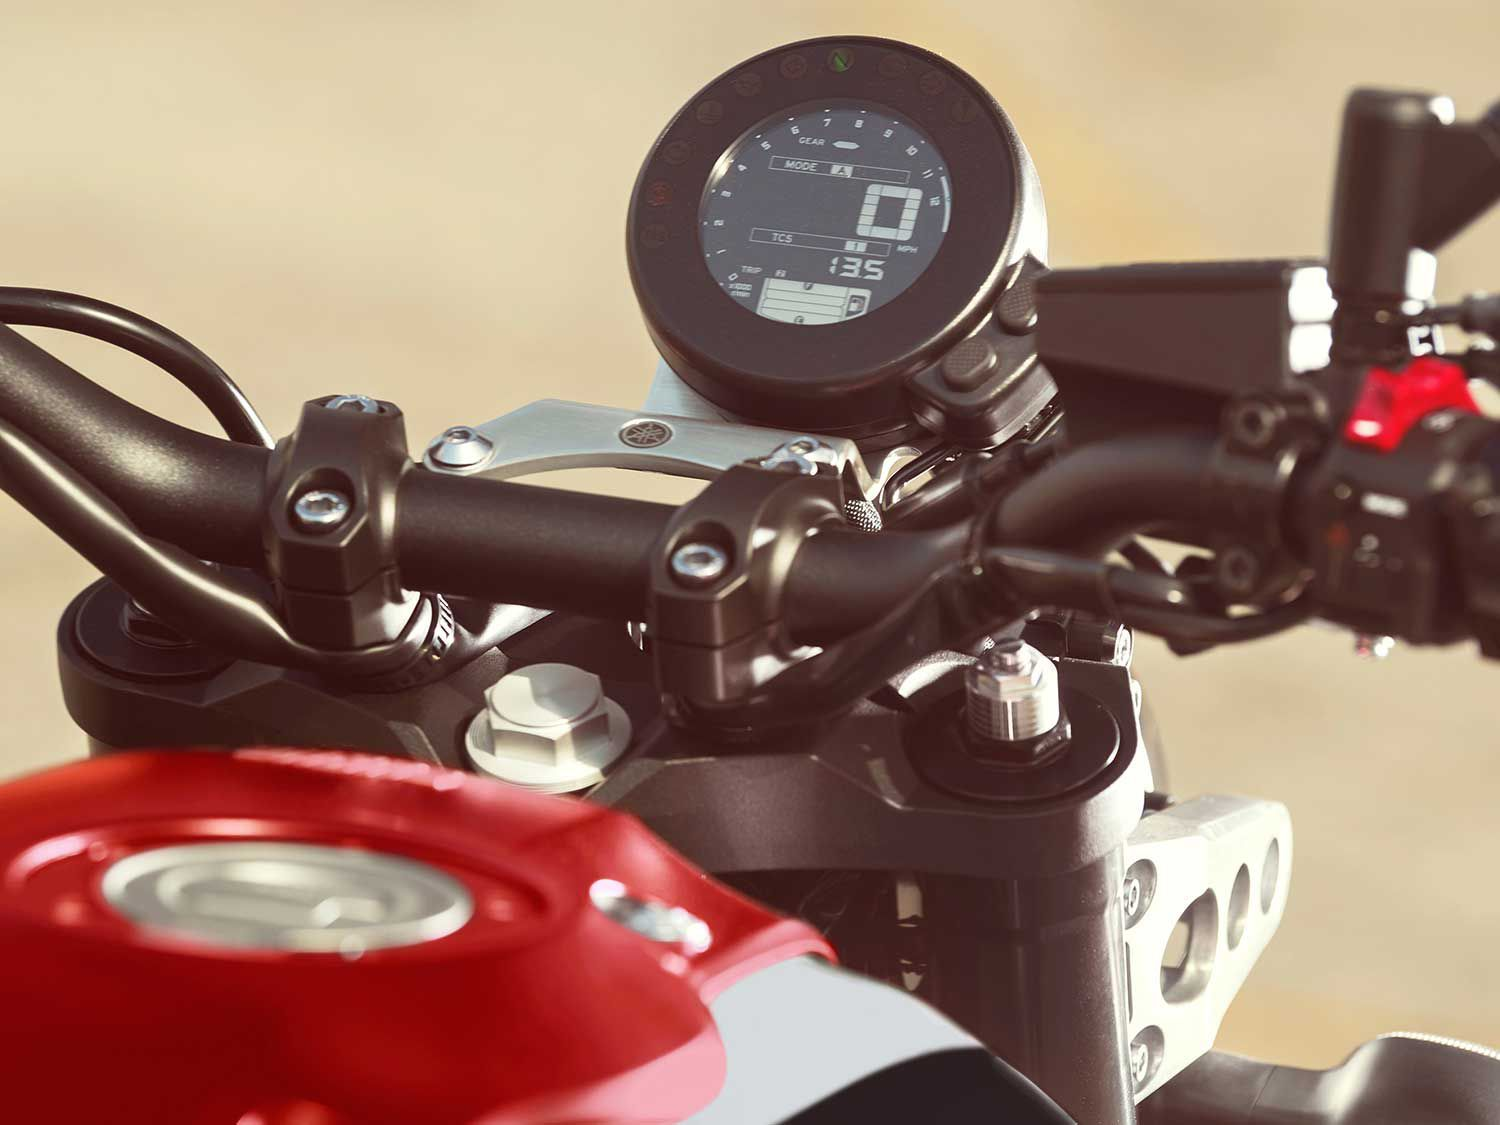 The all-digital LCD gauge has all the usual features plus rider mode and fuel consumption information.